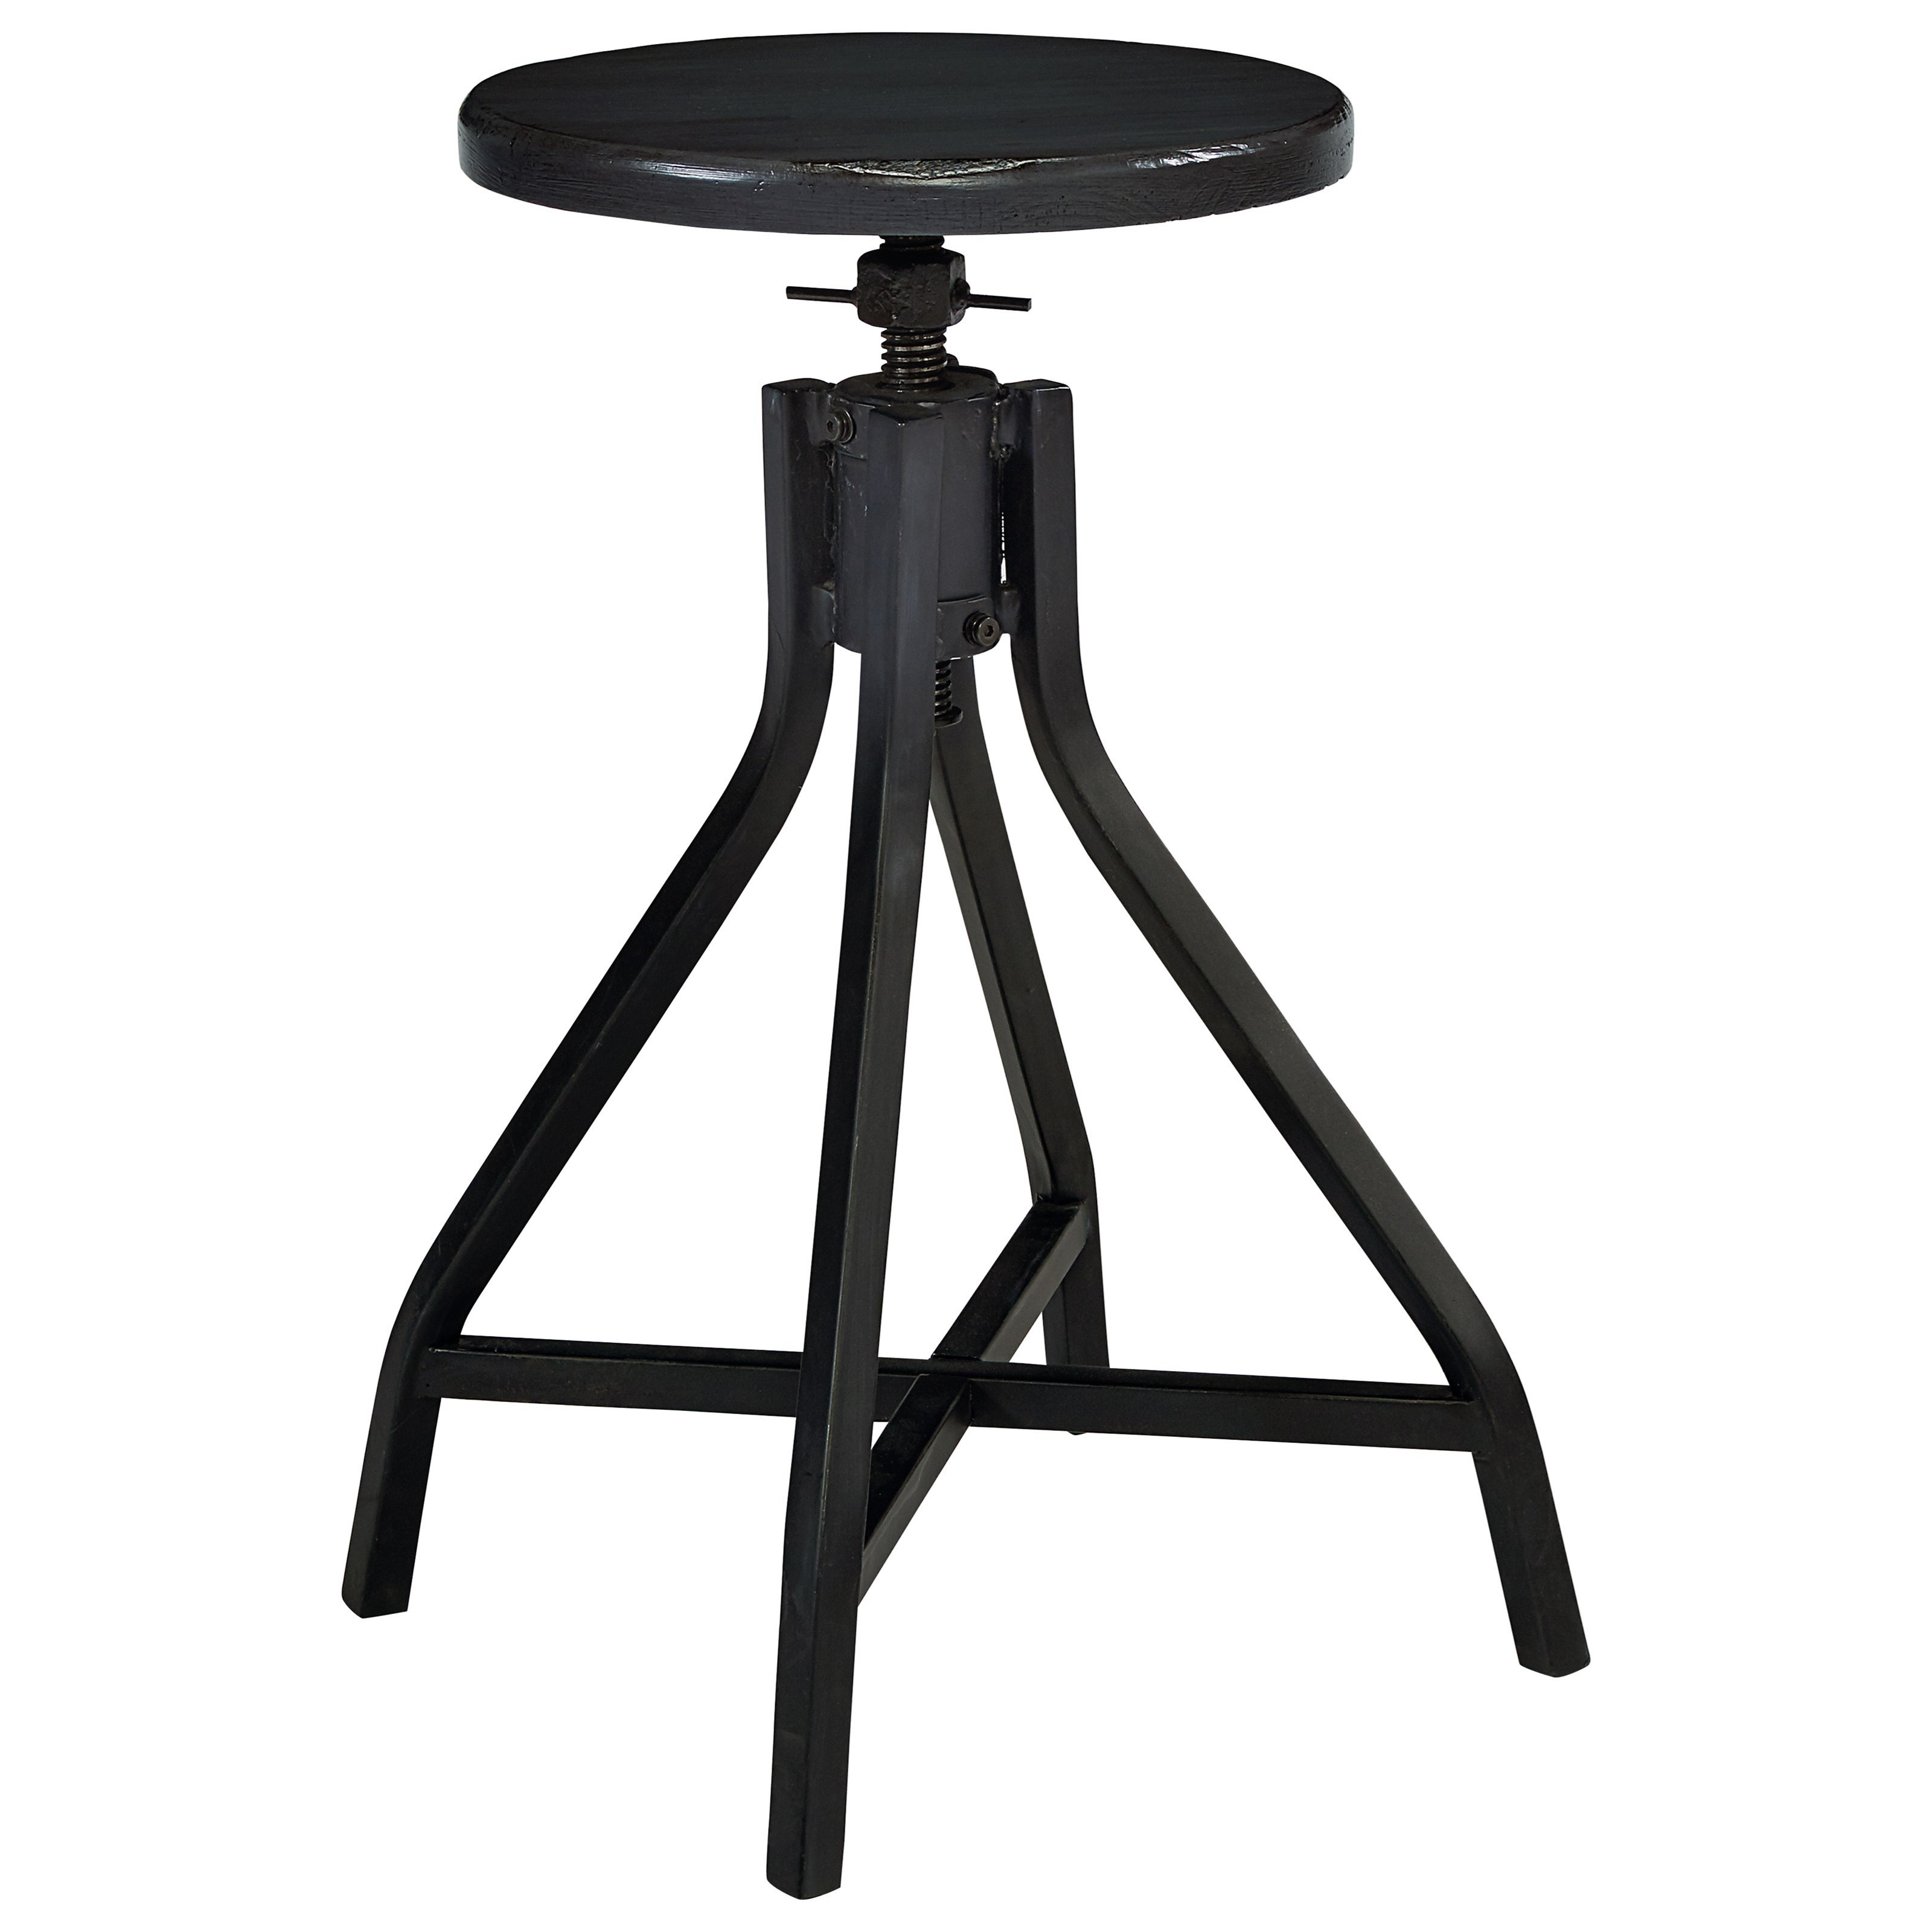 Magnolia Home by Joanna Gaines Accent Elements Industrial Stool - Item Number: 8030104C